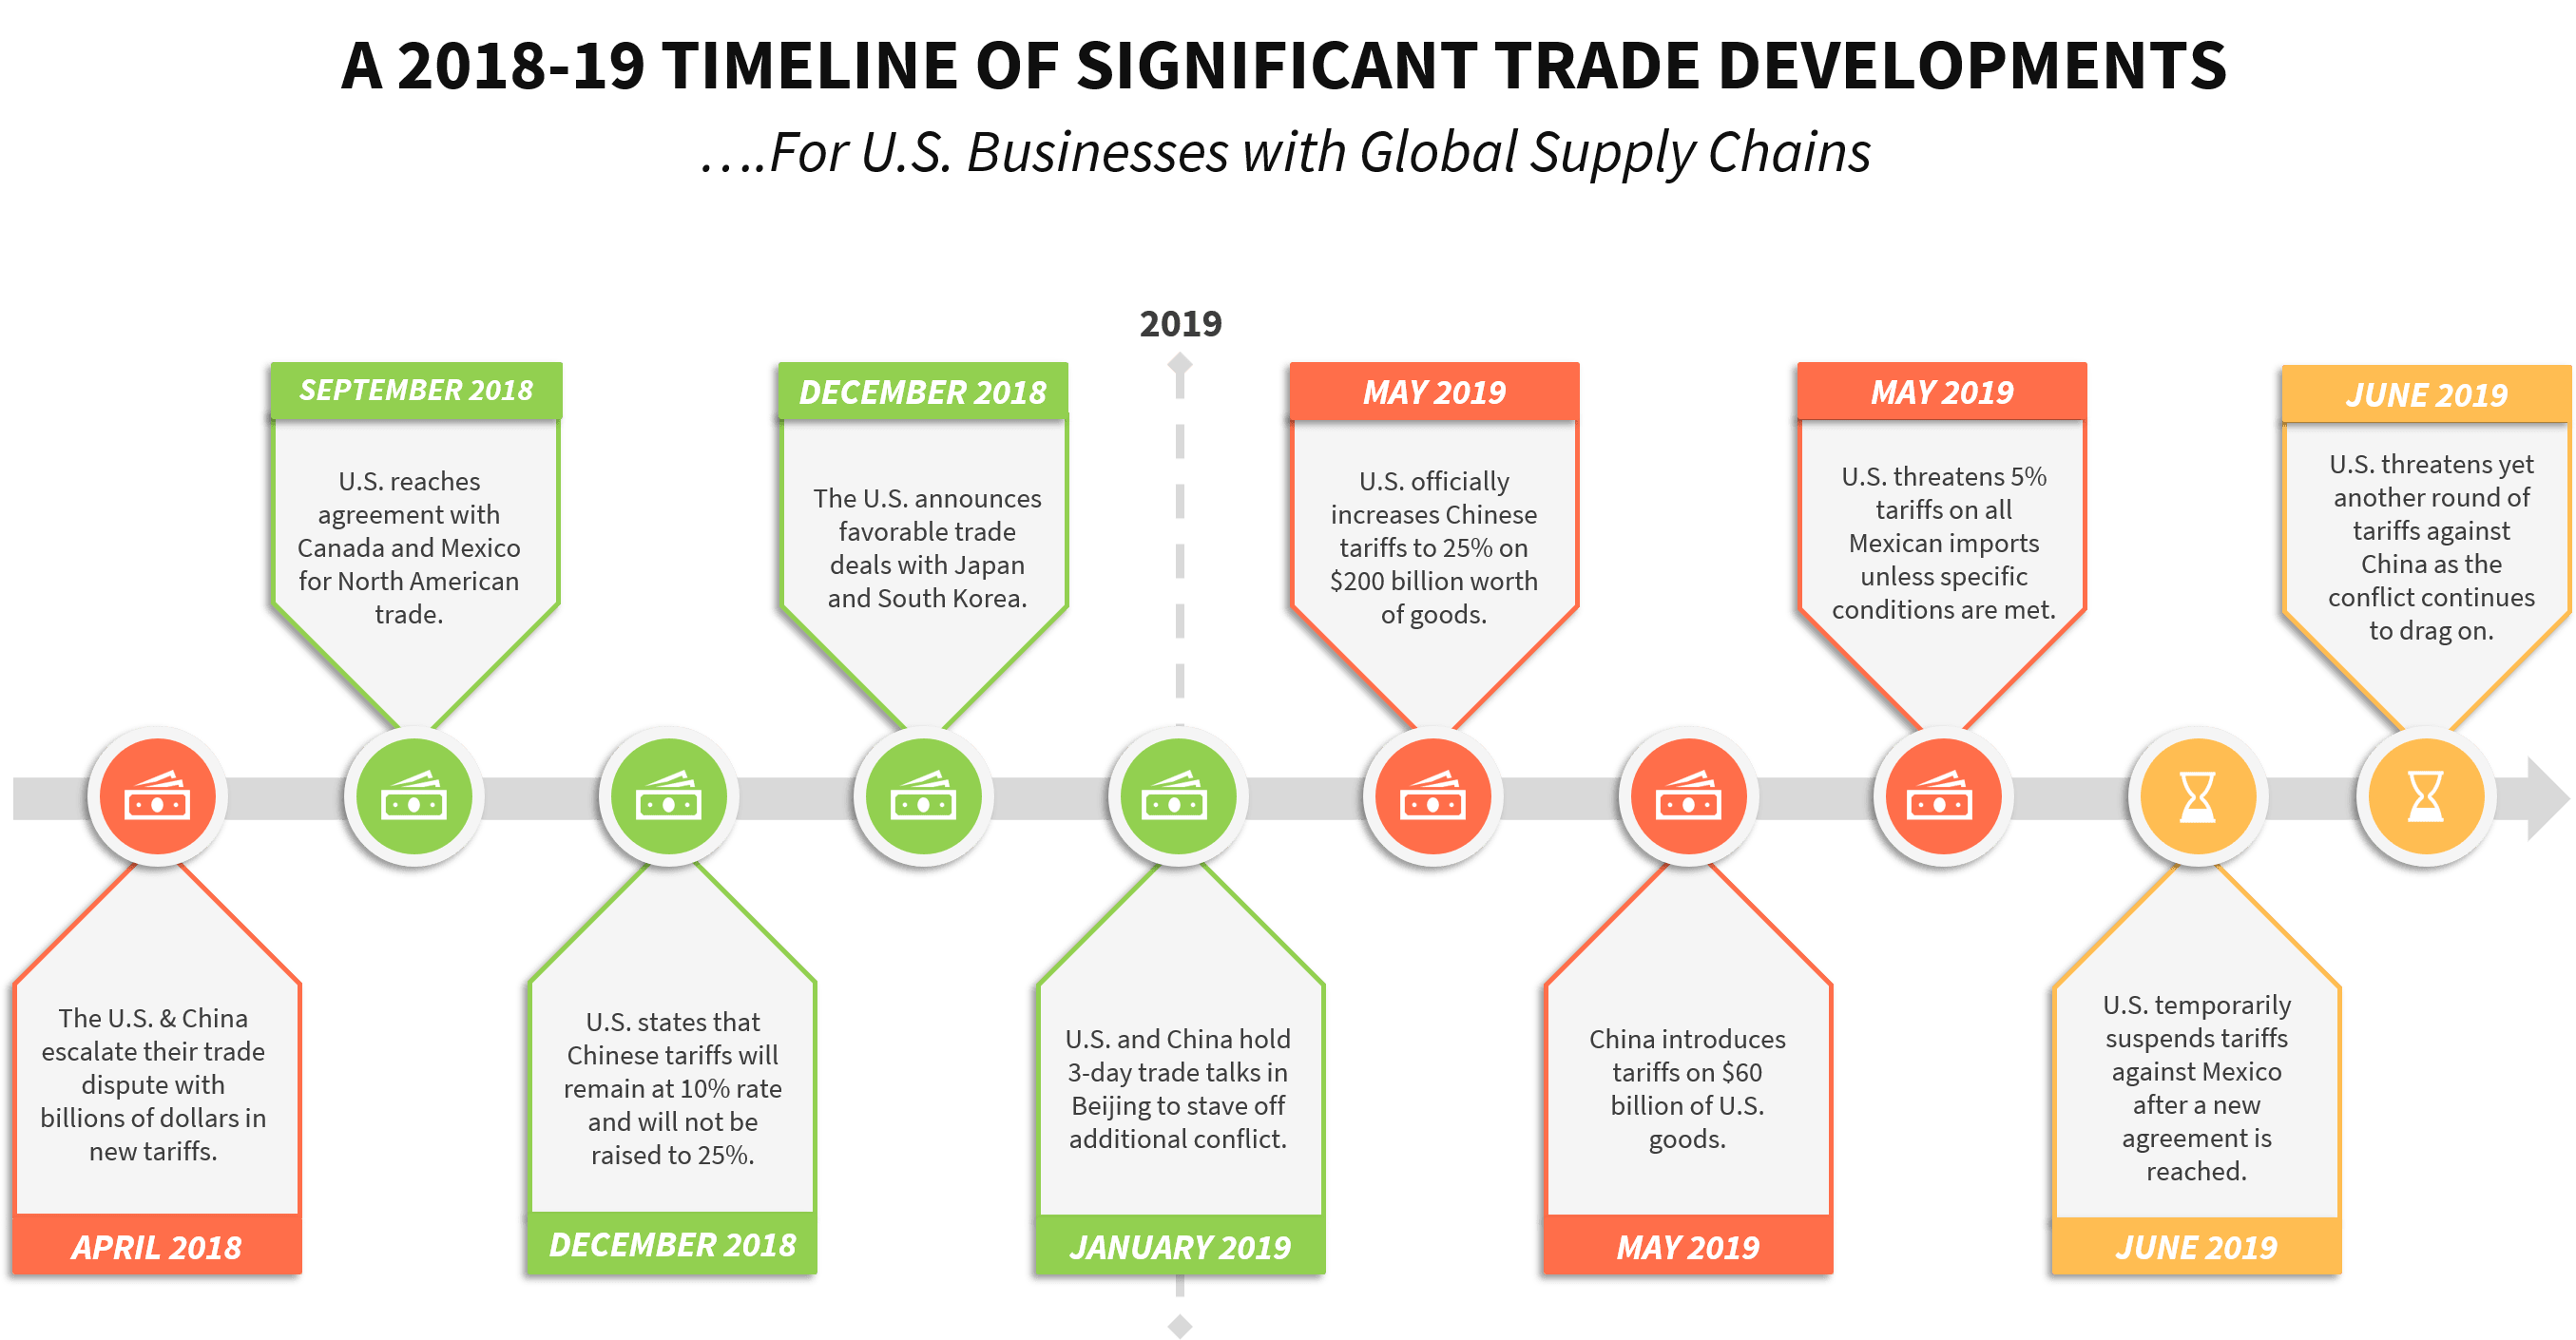 A timeline of significant U.S. trade conflict developments